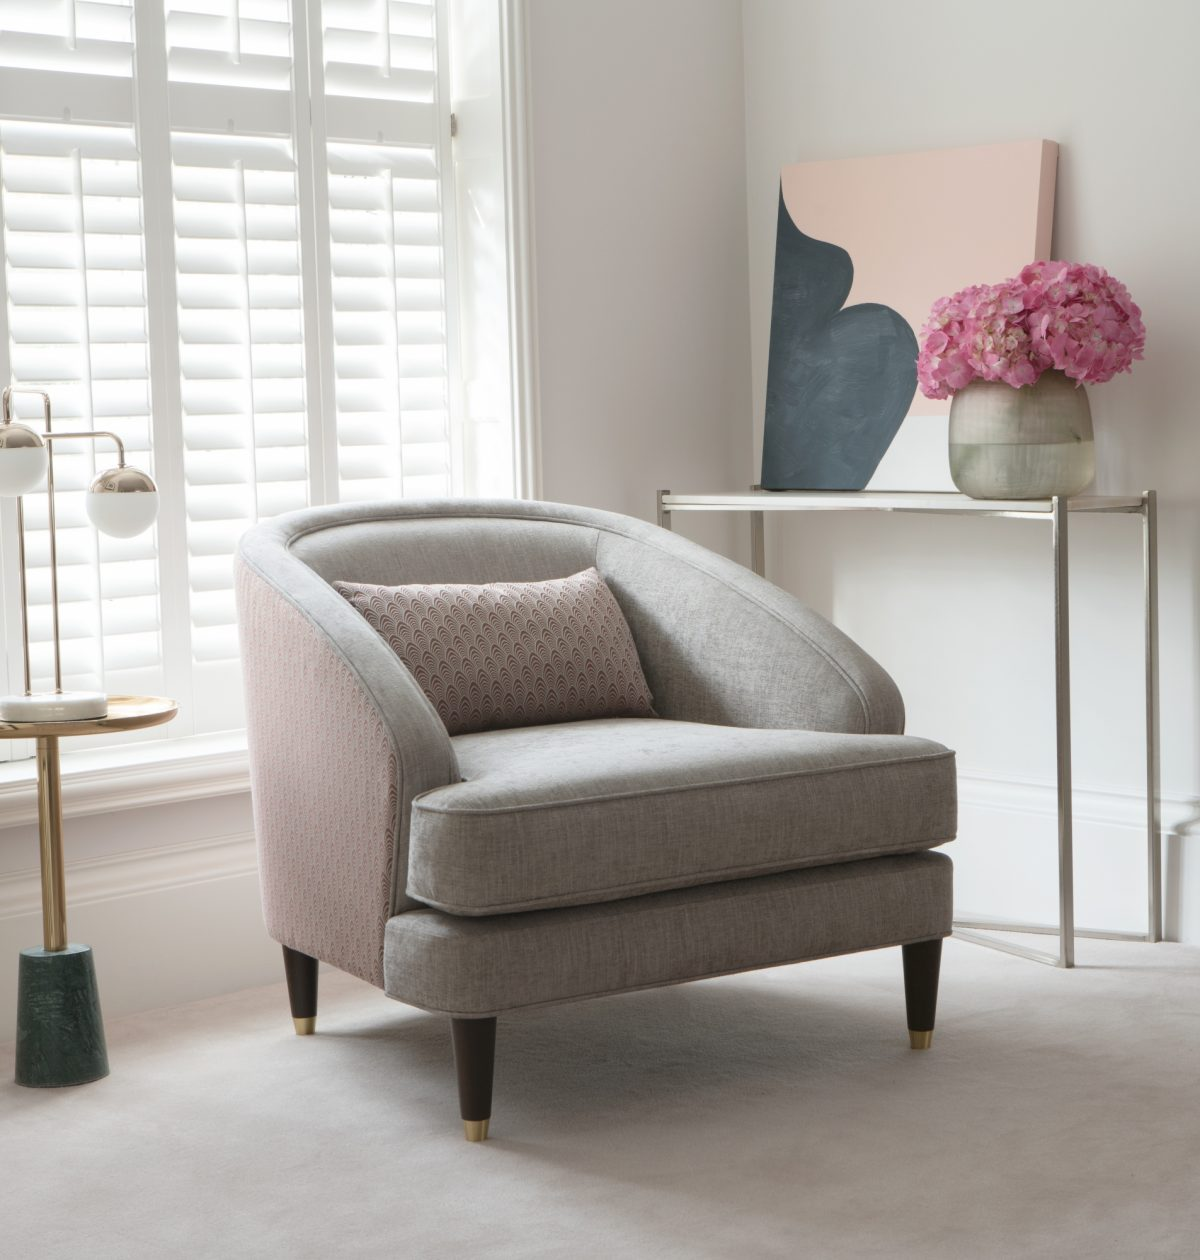 Fitzroy Chair in Bexley Smoke and Blomfield Auburn 1